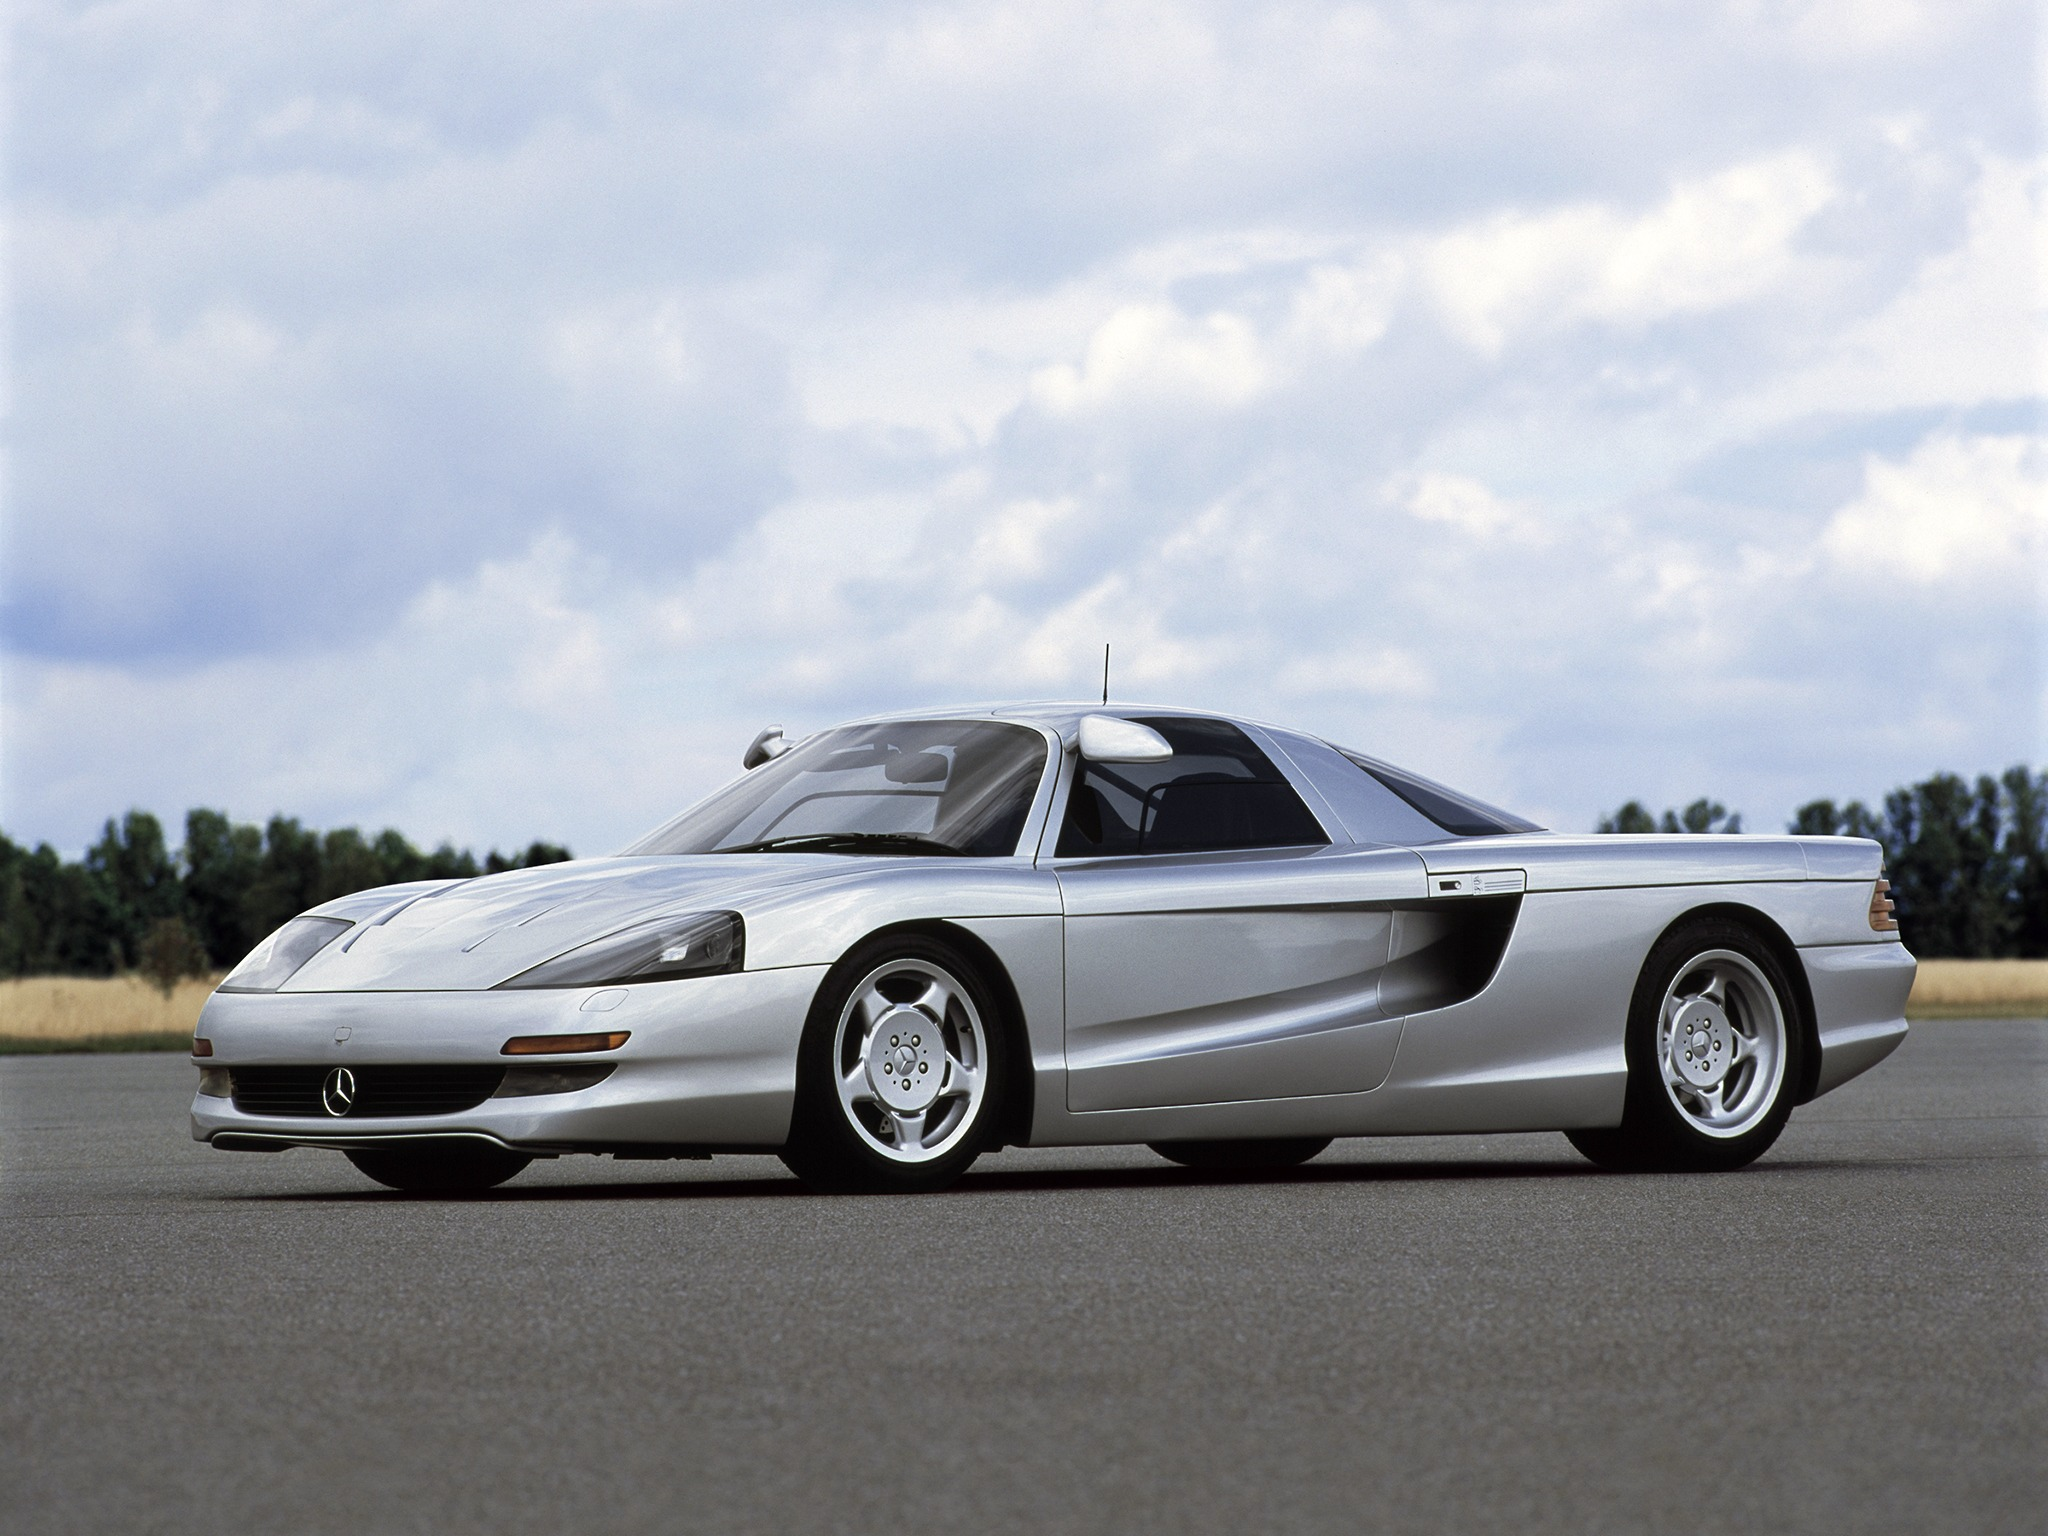 Mercedes benz c112 concept 1991 old concept cars for 1991 mercedes benz